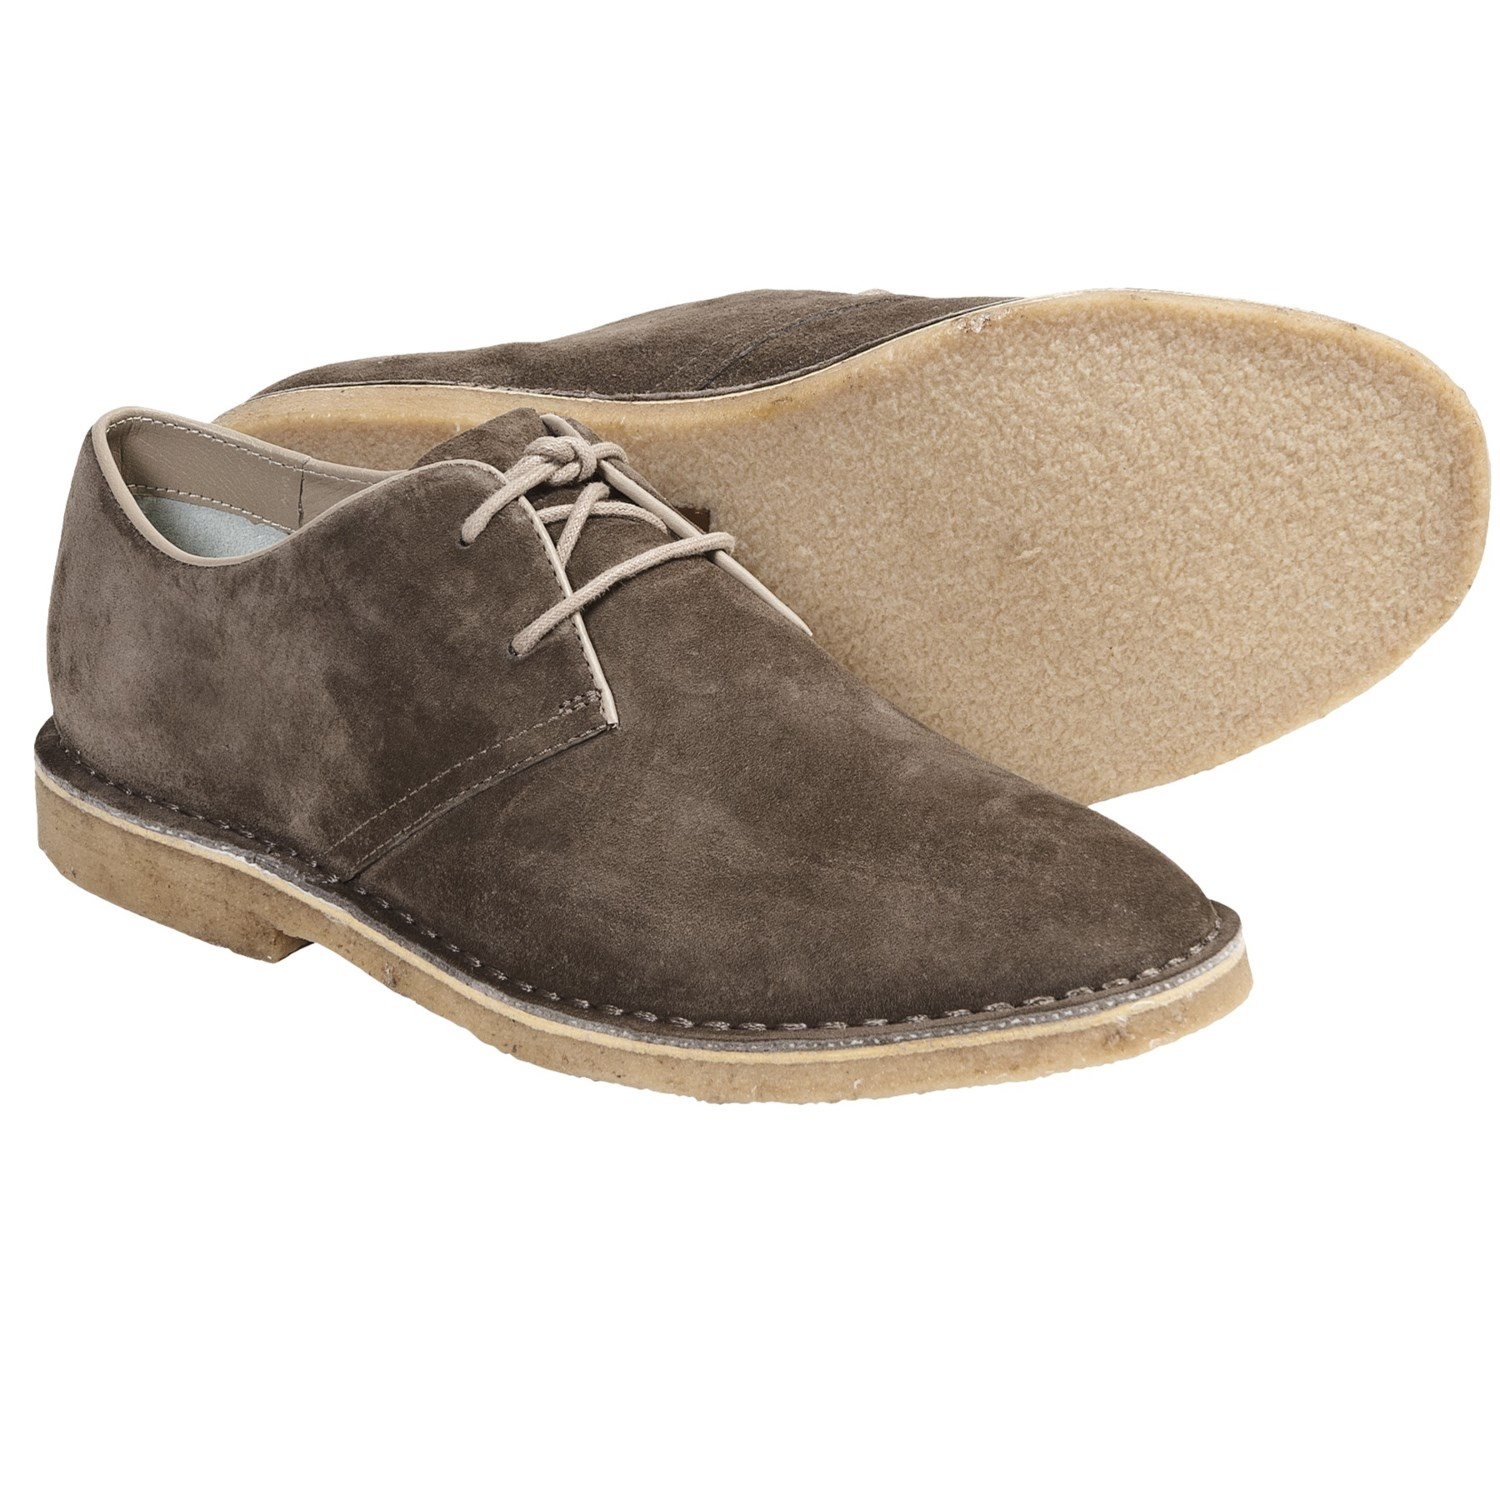 seavees 10 60 buck shoes suede for save 61